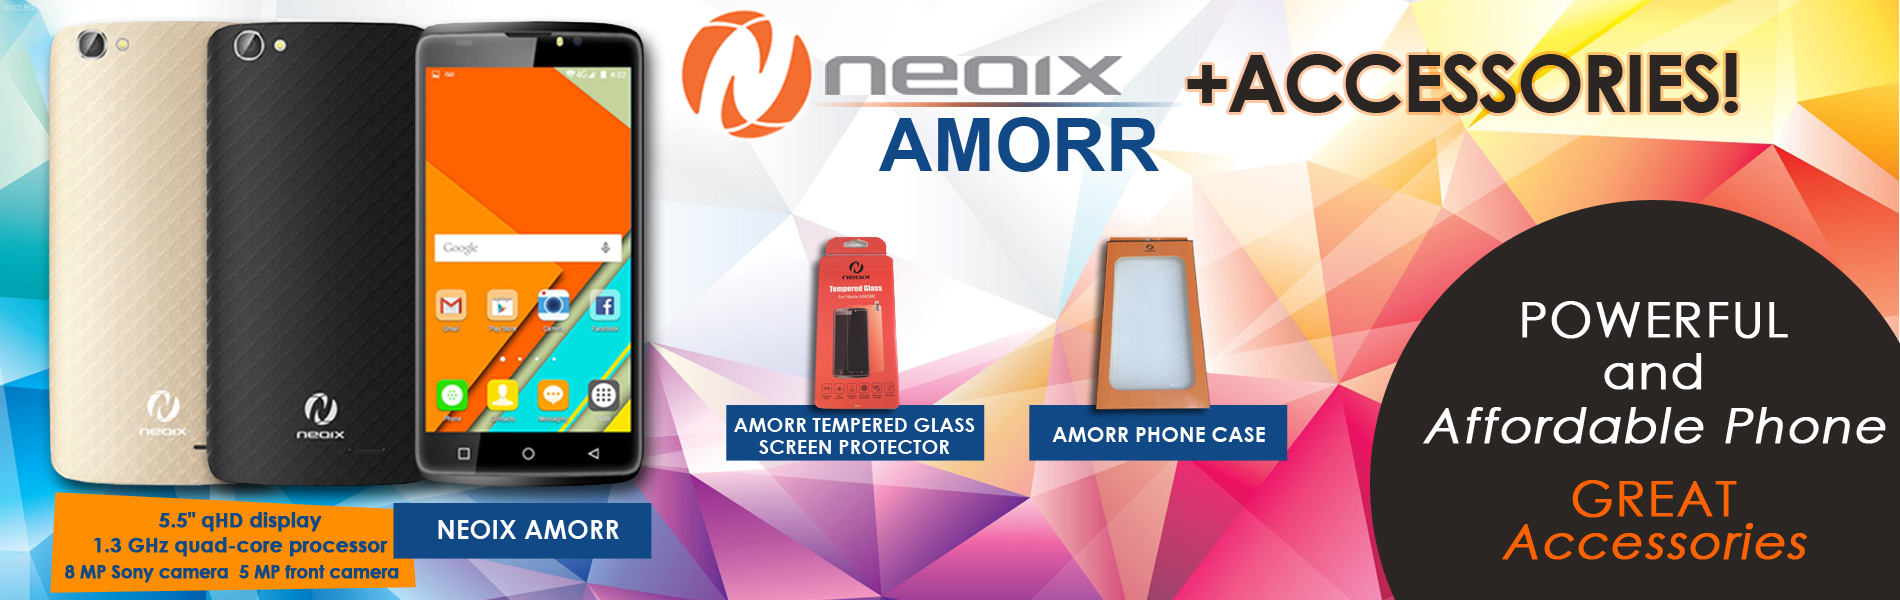 Neoix Amorr and Accessories